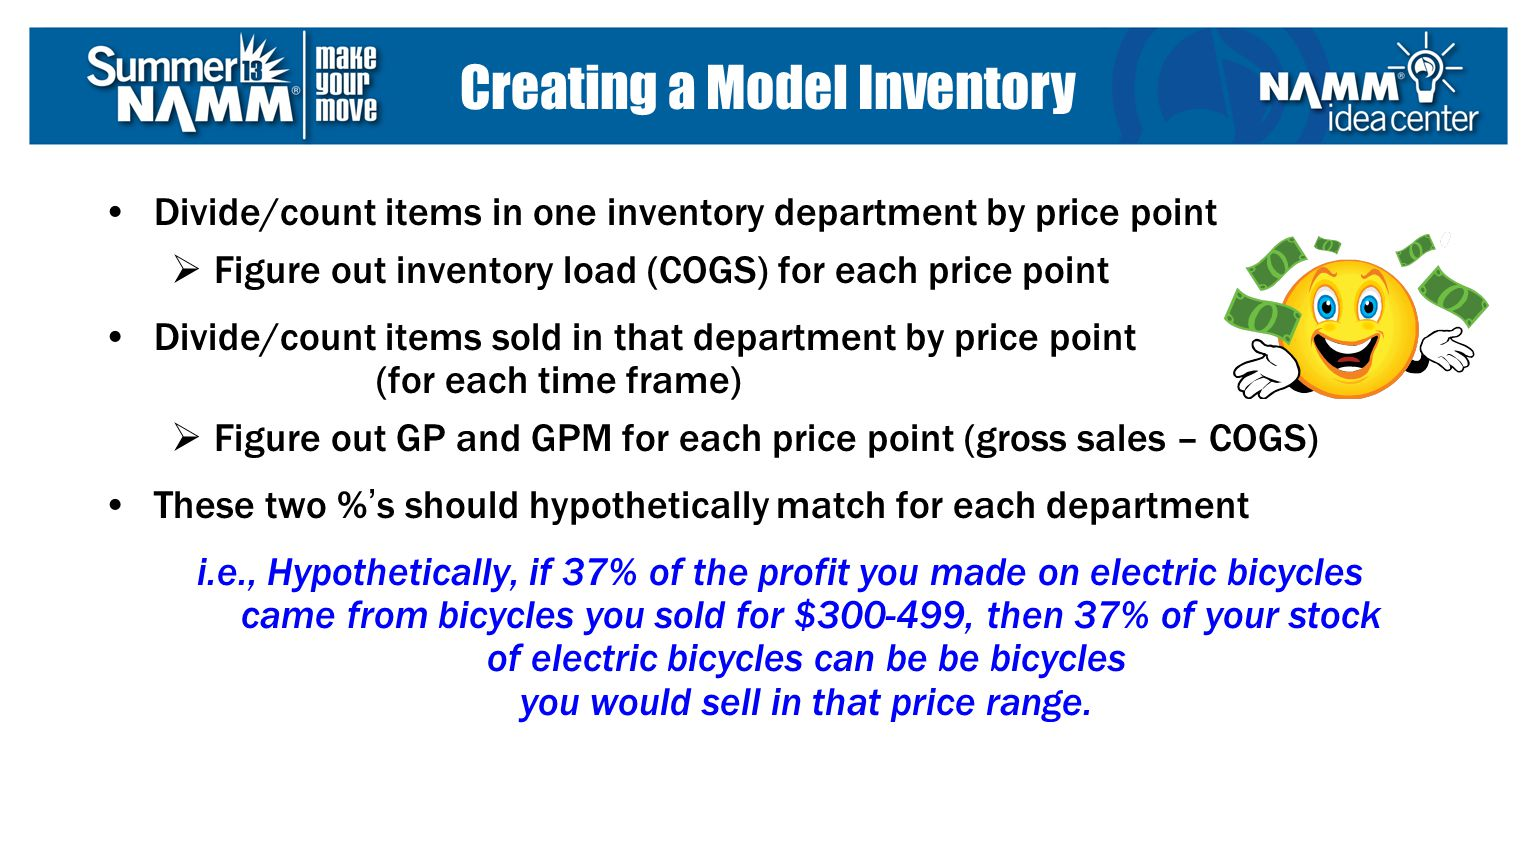 Divide/count items in one inventory department by price point Figure out inventory load (COGS) for each price point Divide/count items sold in that department by price point (for each time frame) Figure out GP and GPM for each price point (gross sales – COGS) These two %s should hypothetically match for each department i.e., Hypothetically, if 37% of the profit you made on electric bicycles came from bicycles you sold for $300-499, then 37% of your stock of electric bicycles can be be bicycles you would sell in that price range.